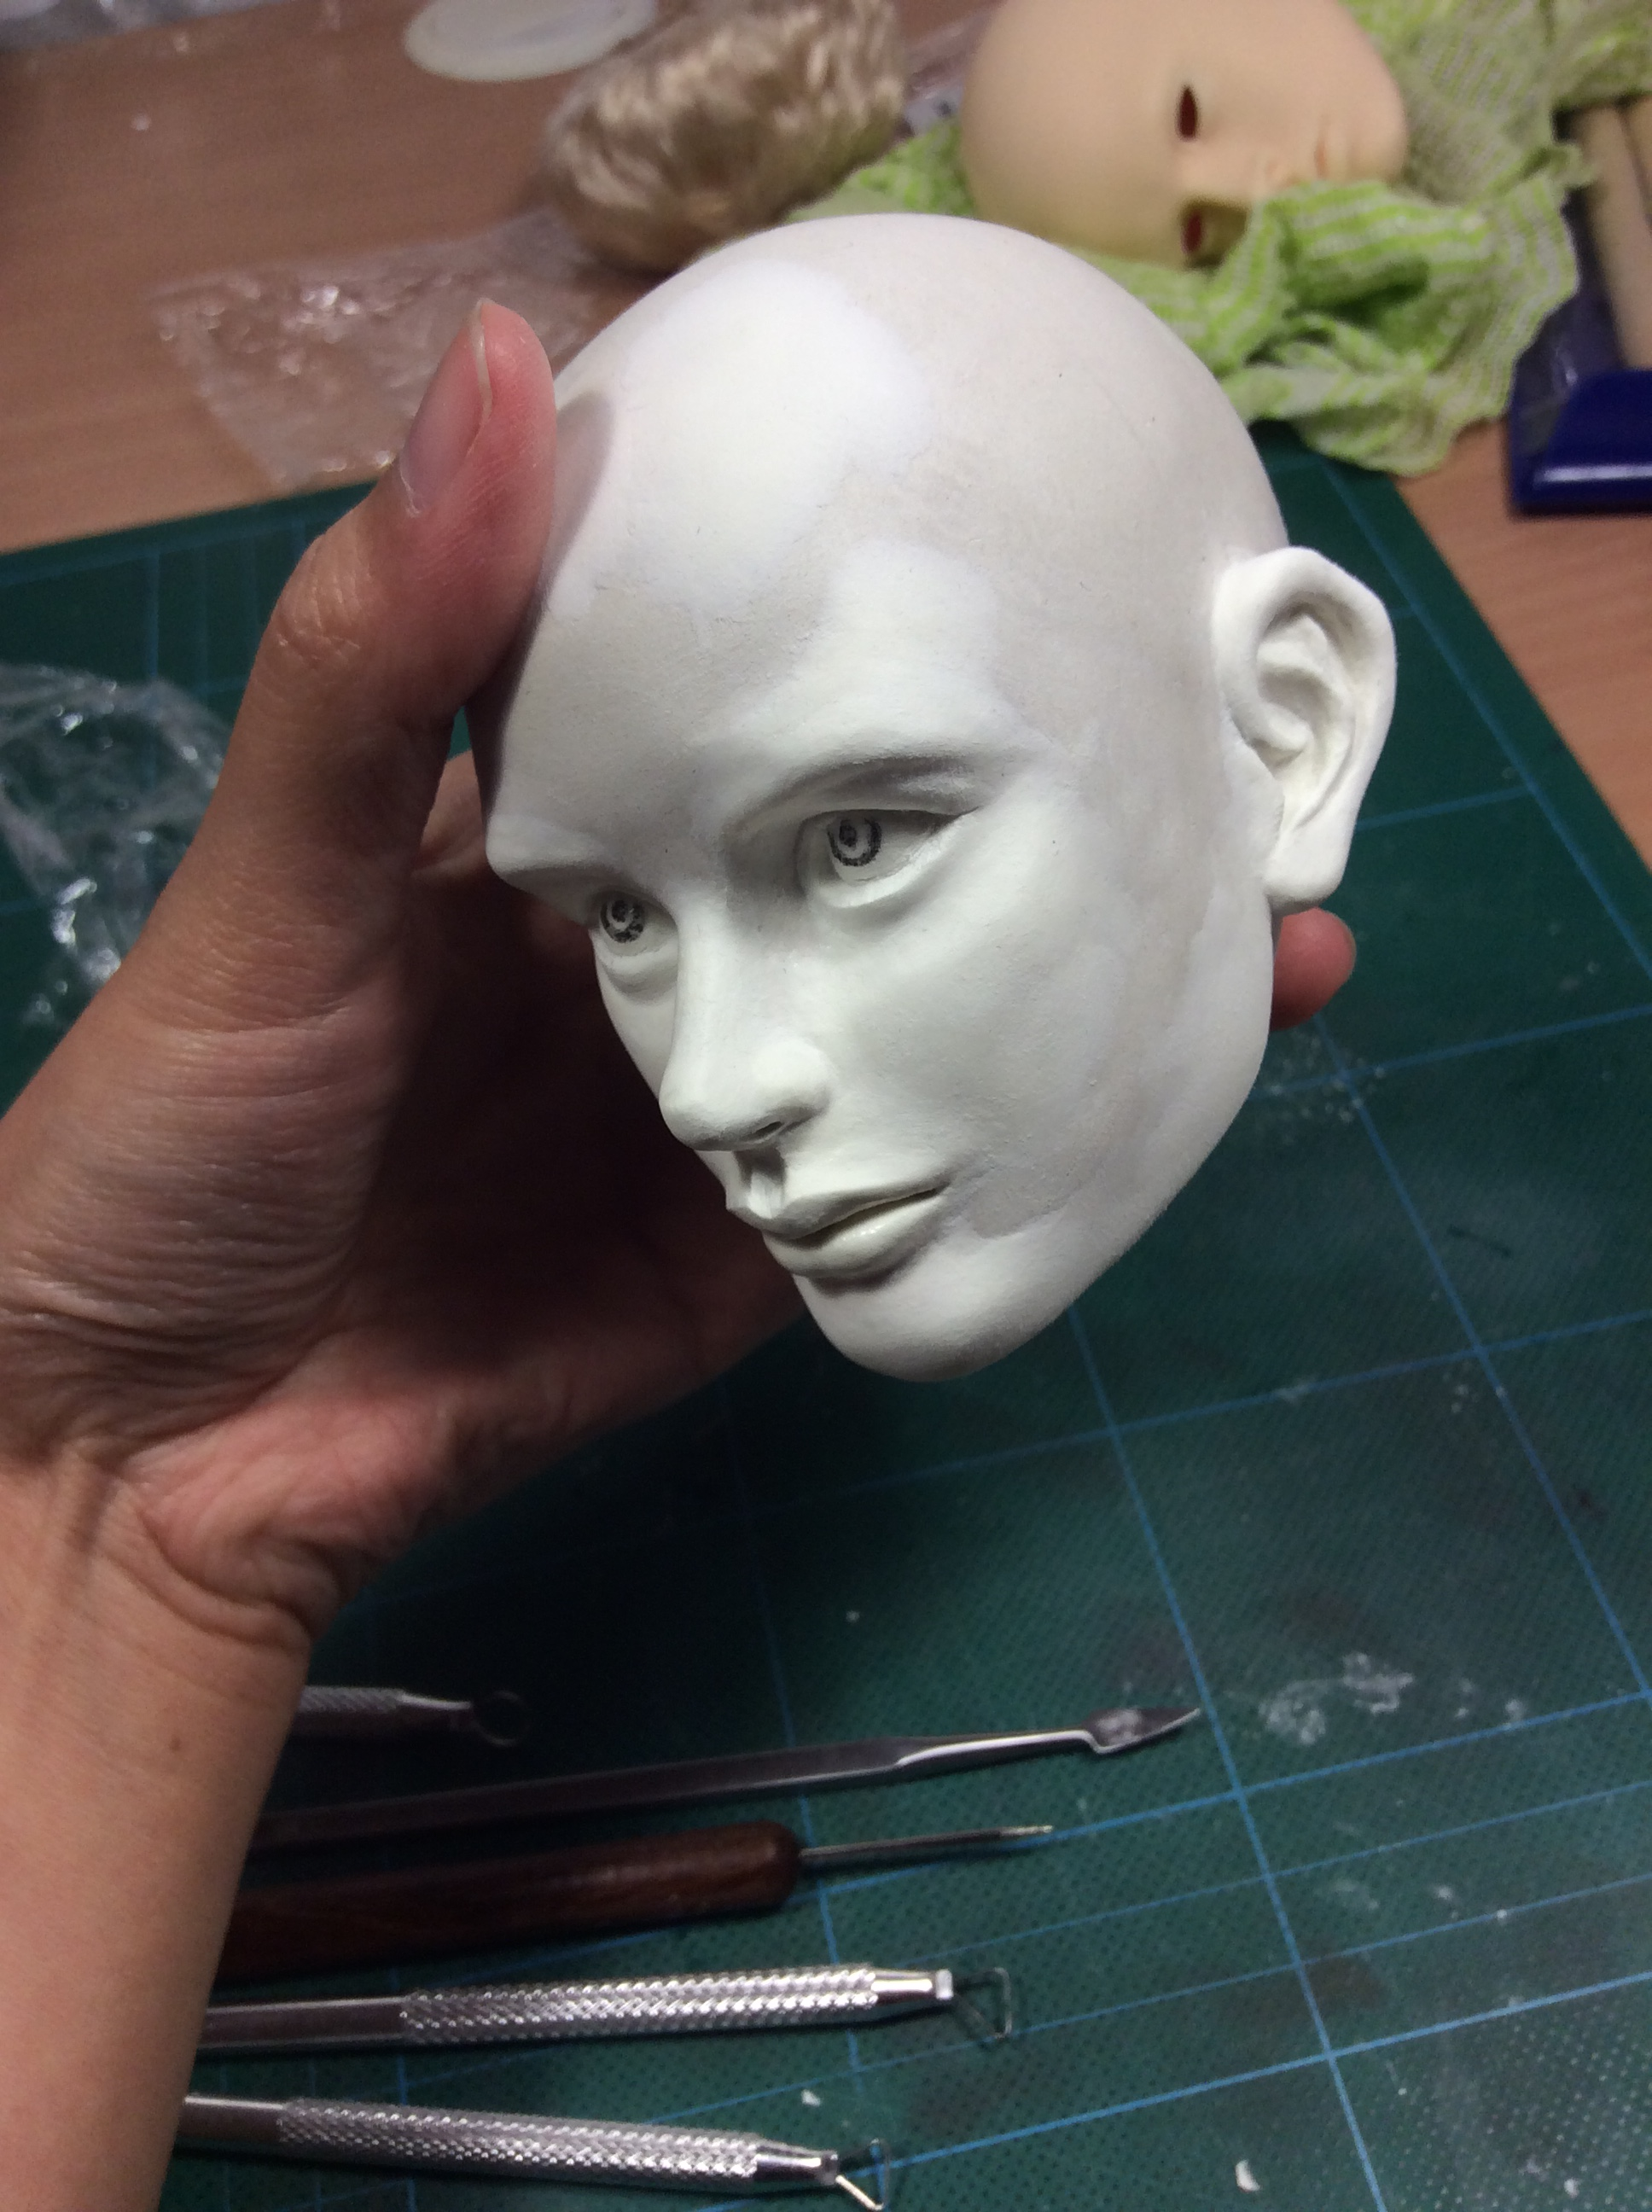 jemse---my-first-doll-head-making-progress-diary-part-4_32275430092_o